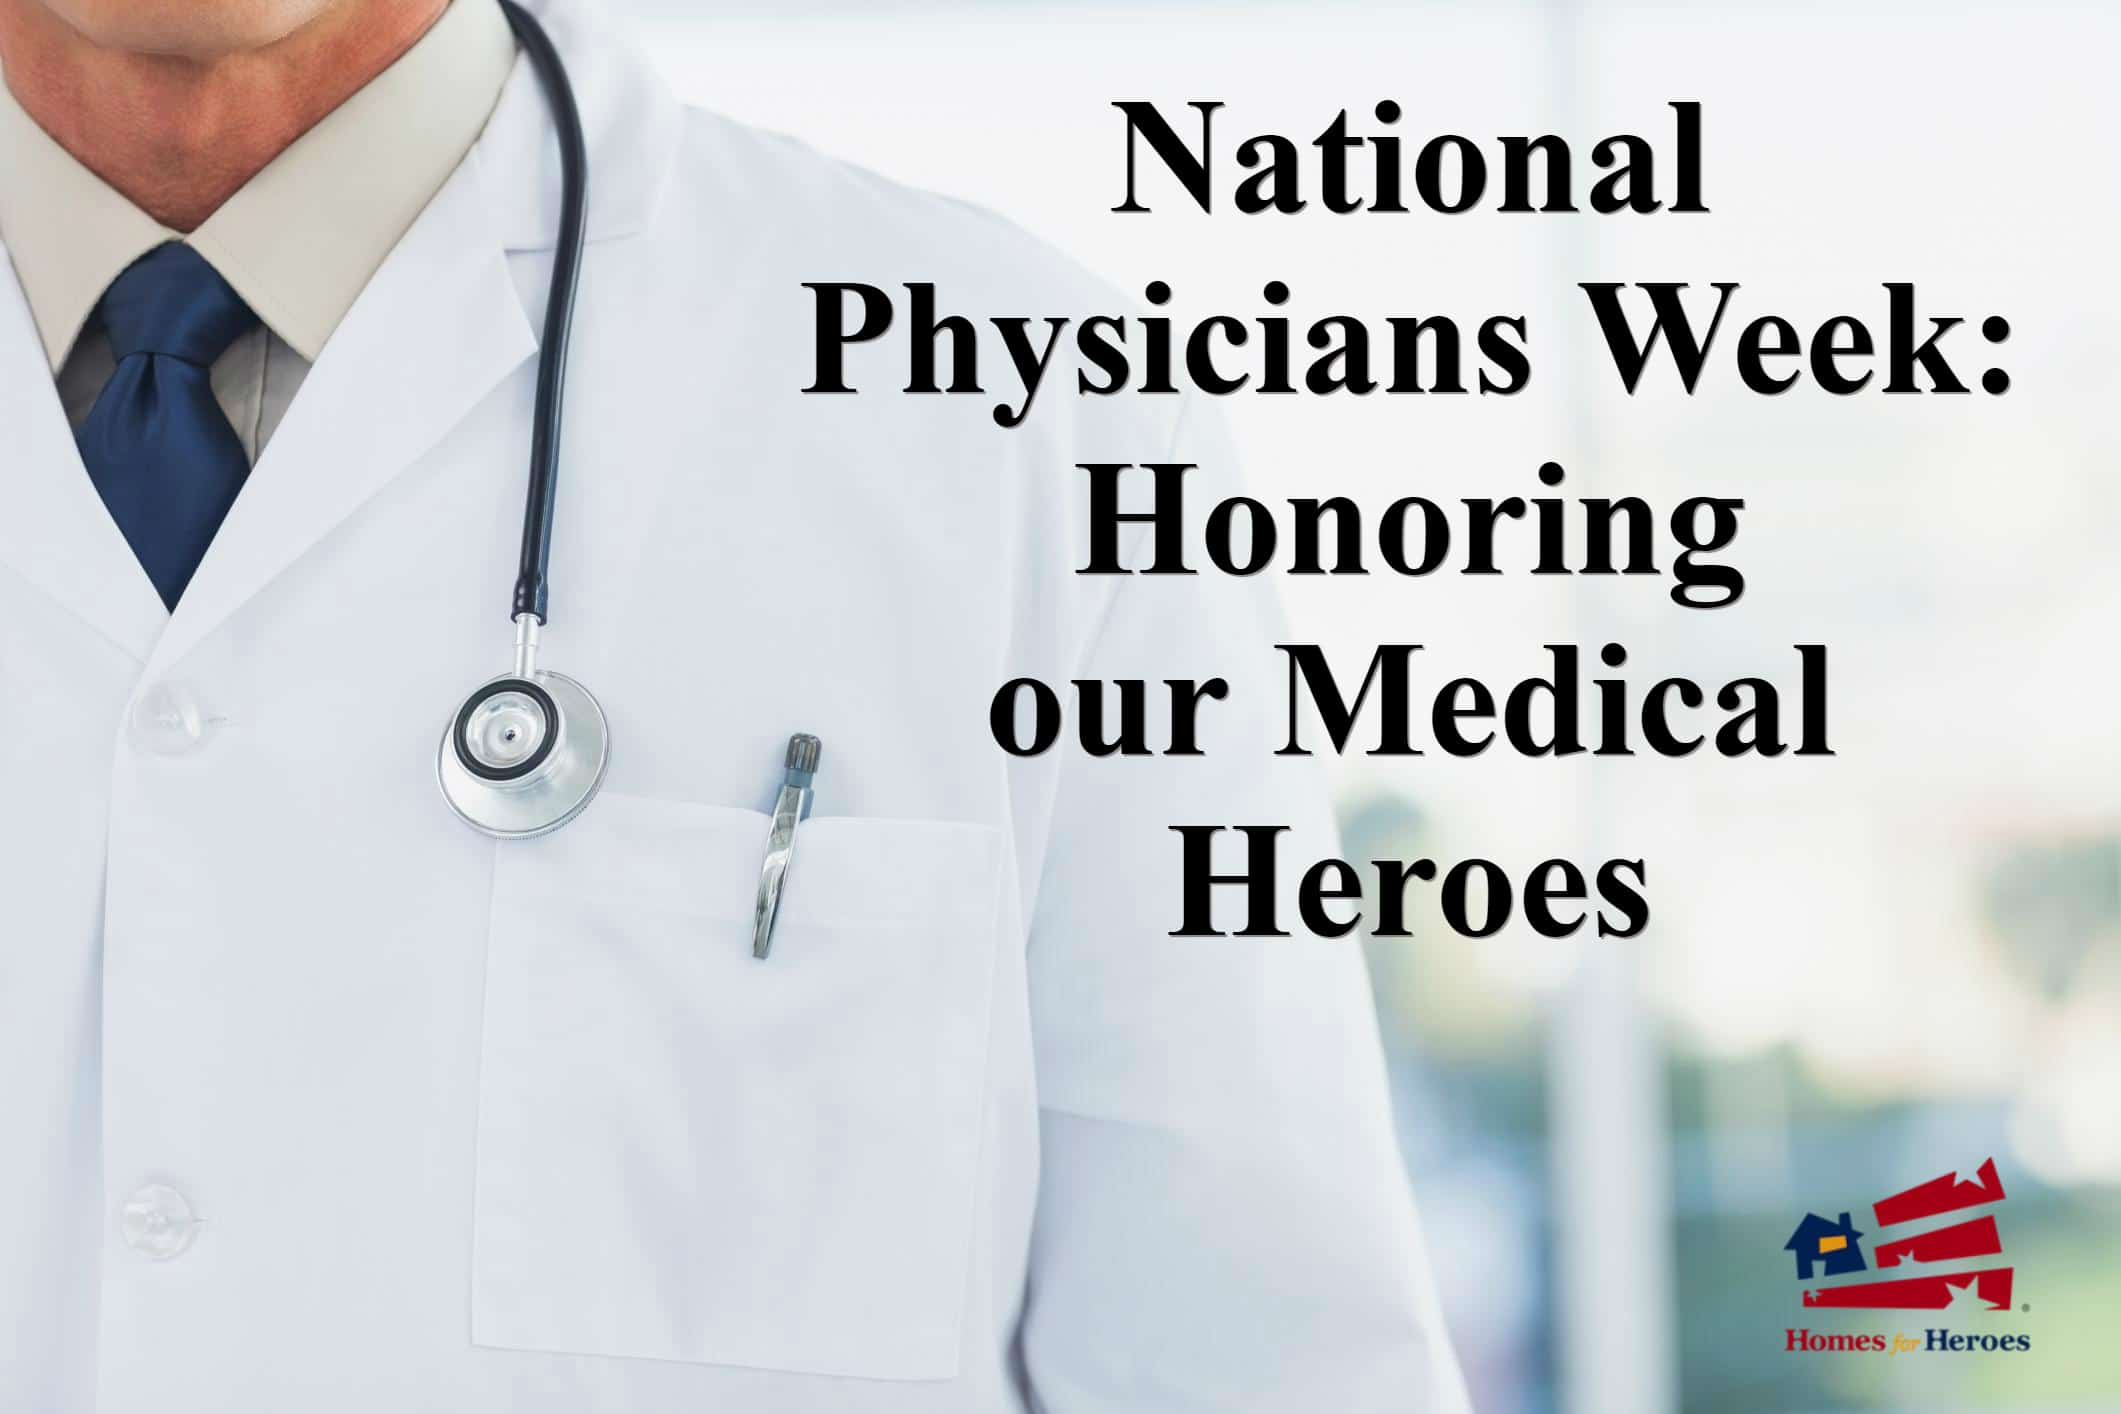 National Physicians Week - Honoring our Medical Heroes